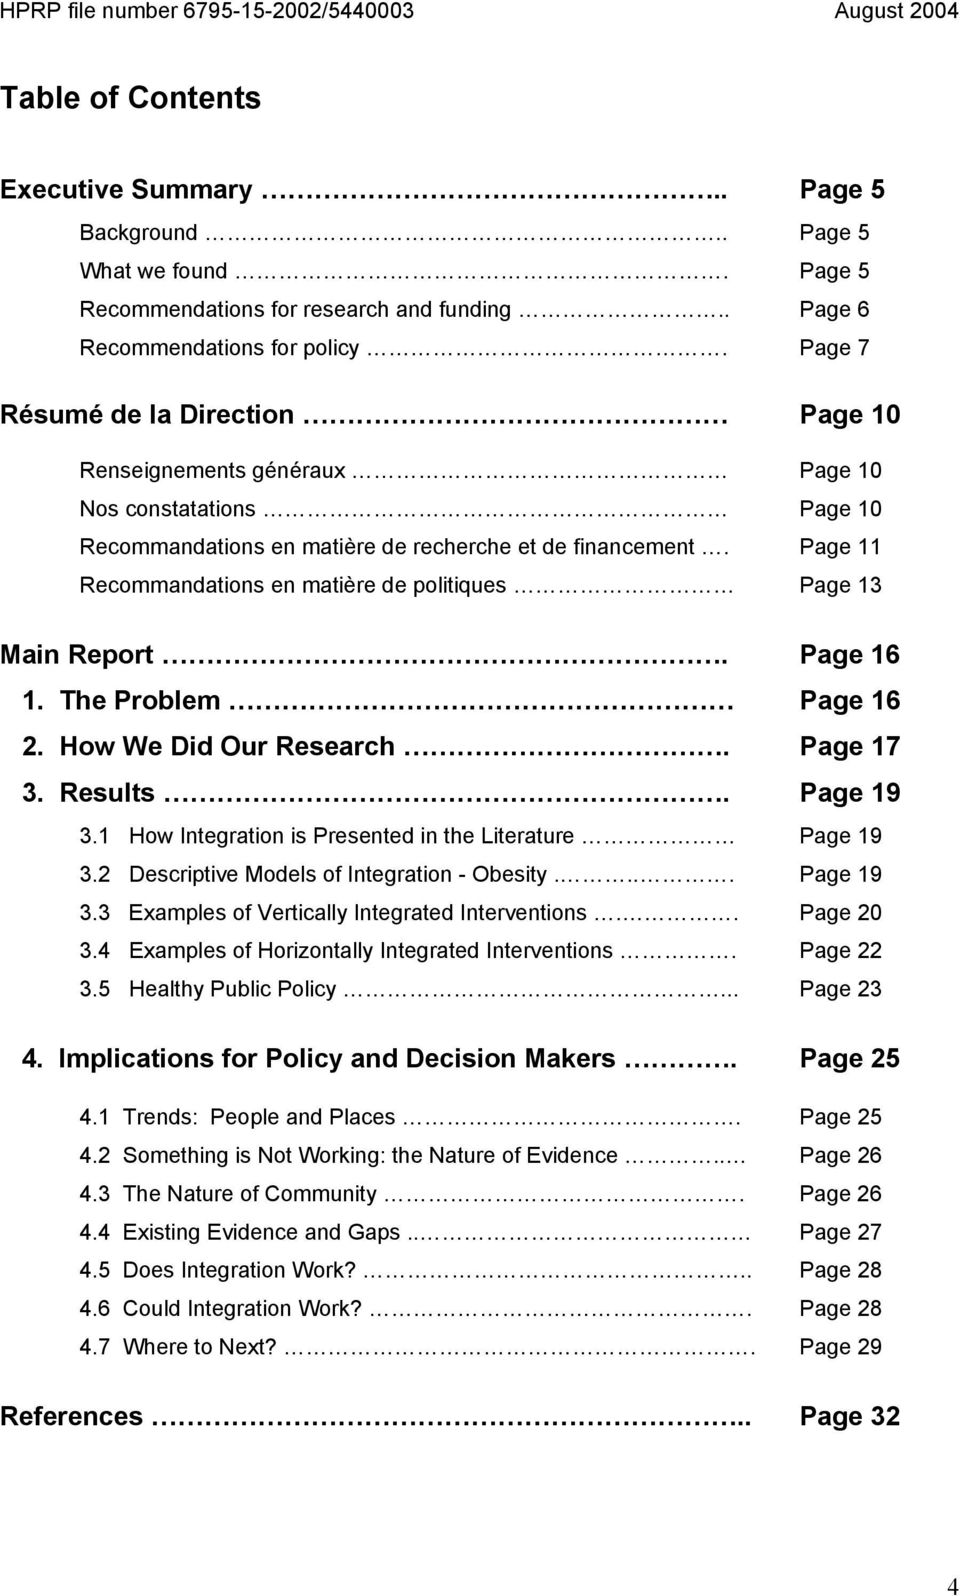 Page 11 Recommandations en matière de politiques Page 13 Main Report. Page 16 1. The Problem Page 16 2. How We Did Our Research. Page 17 3. Results. Page 19 3.